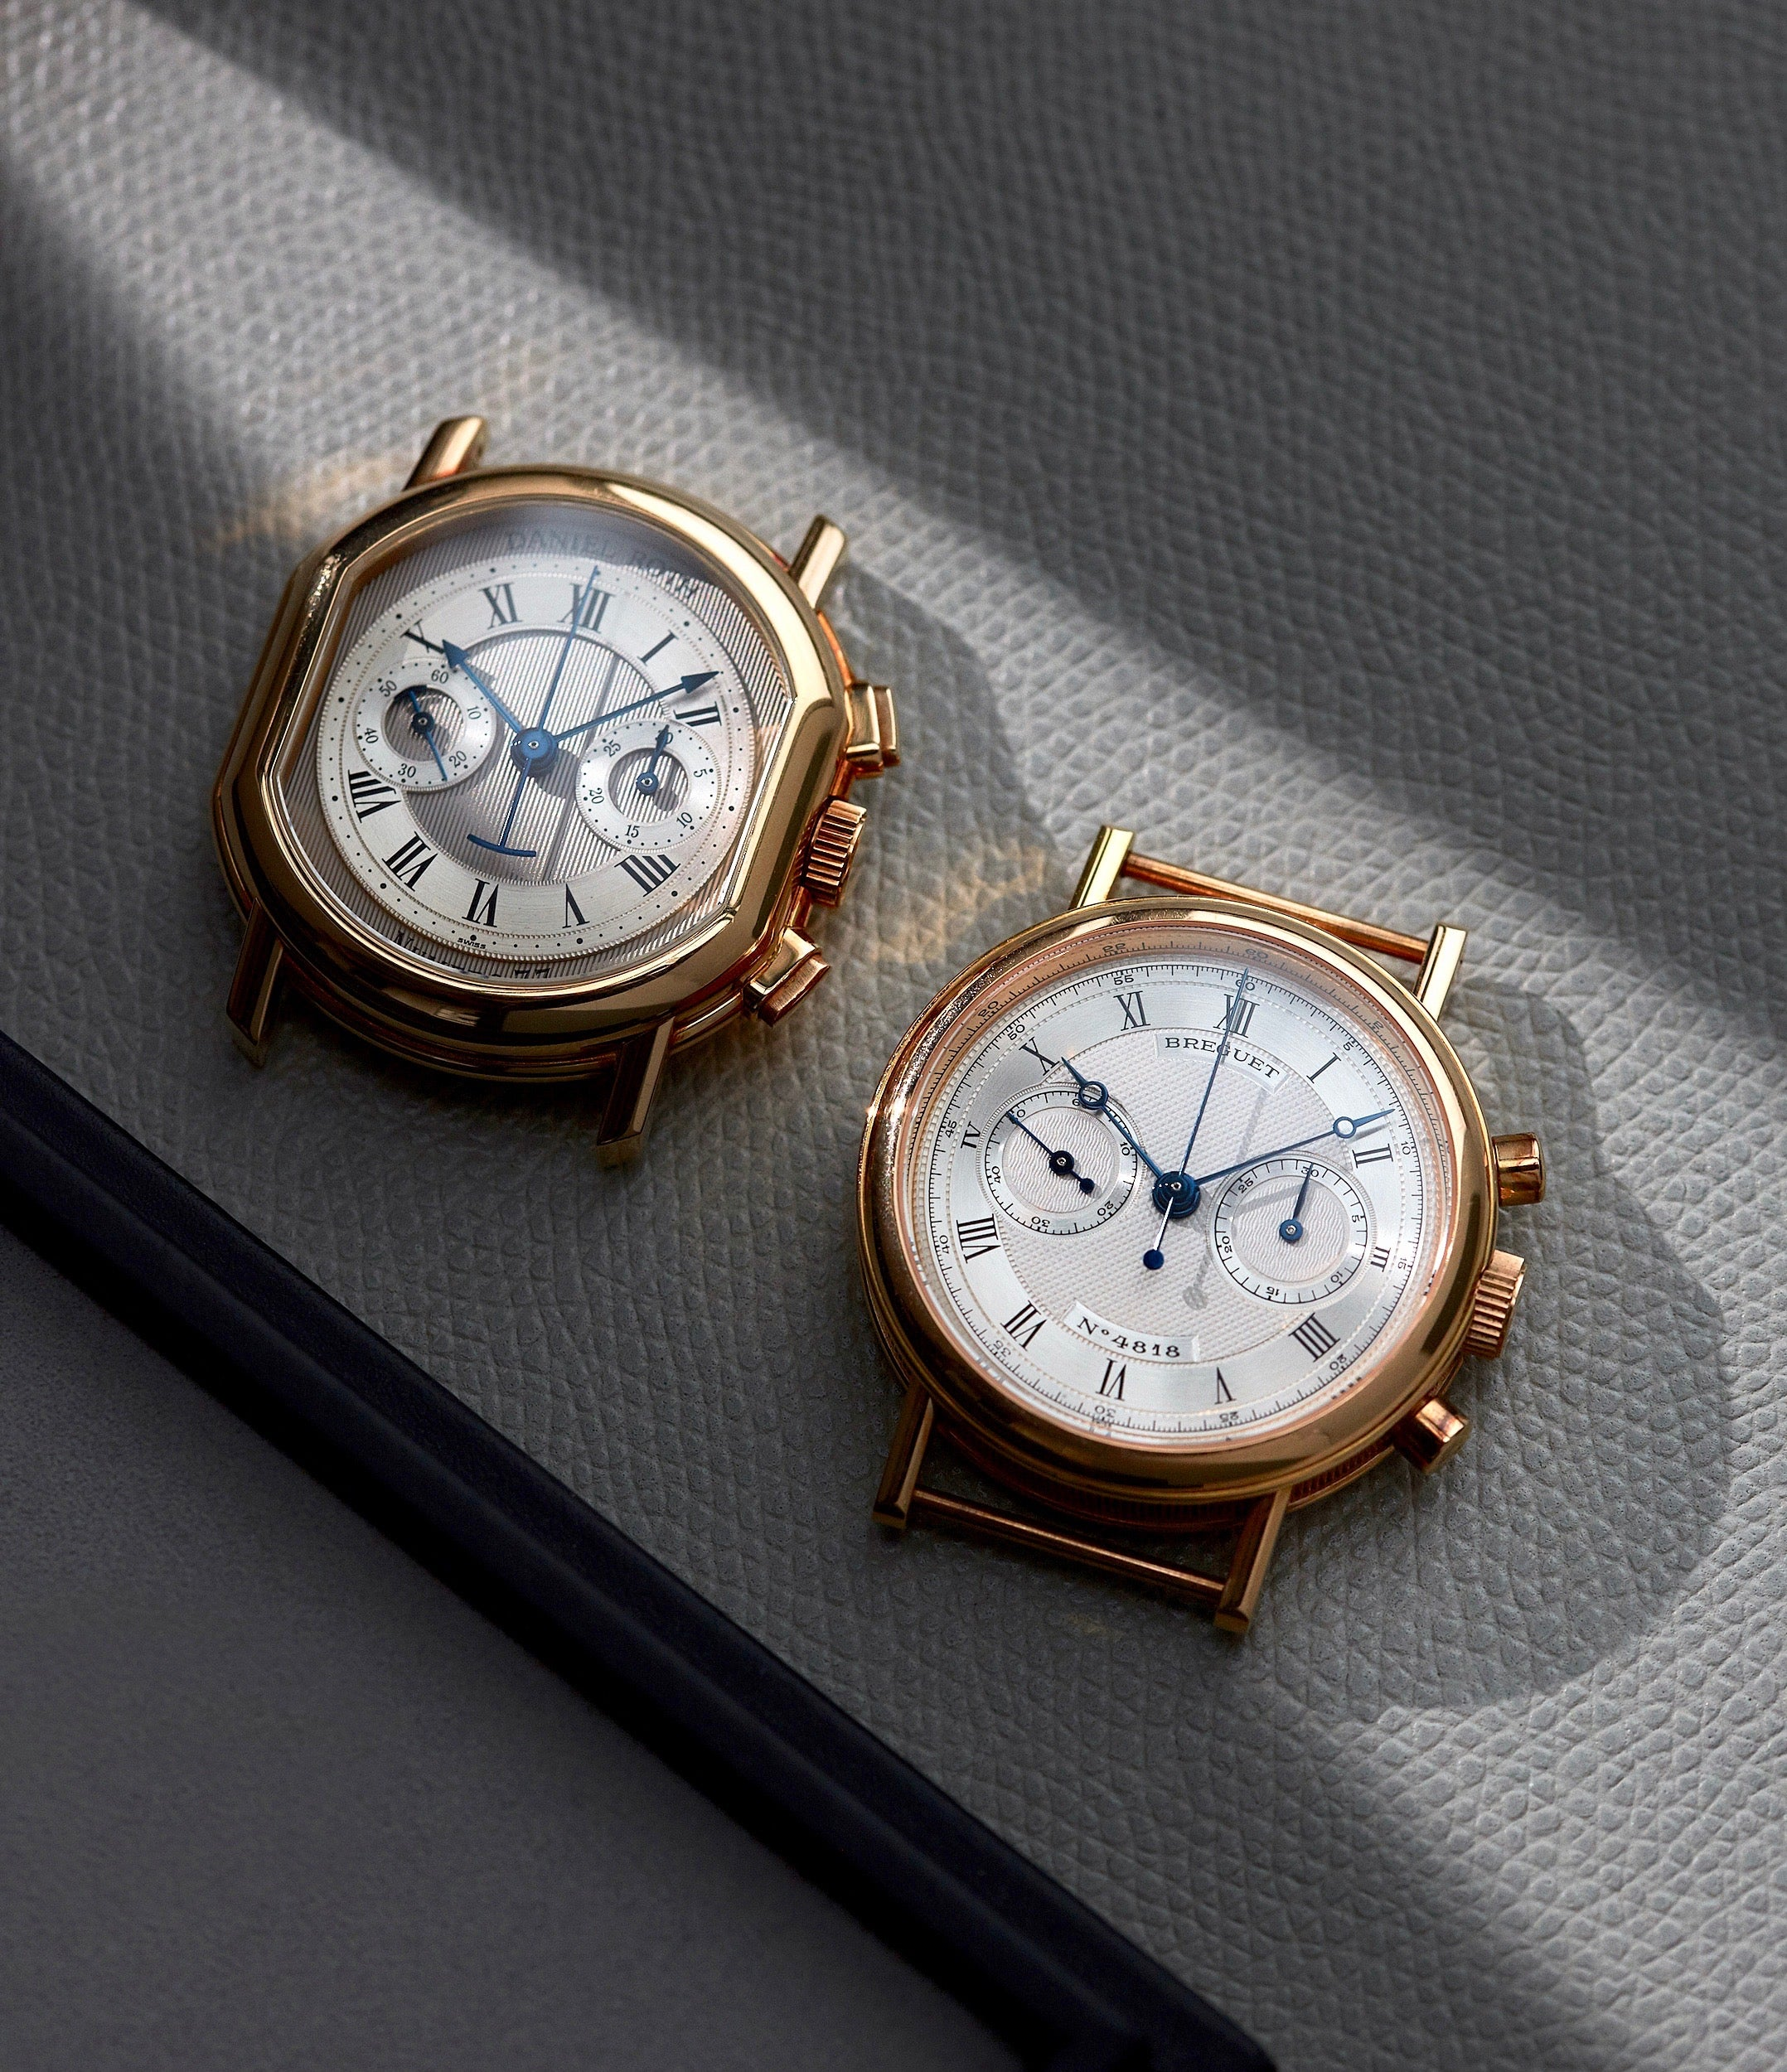 Daniel Roth and Breguet chronographs face up in In-house or ébauche, and does it even matter anymore? For A Collected Man London